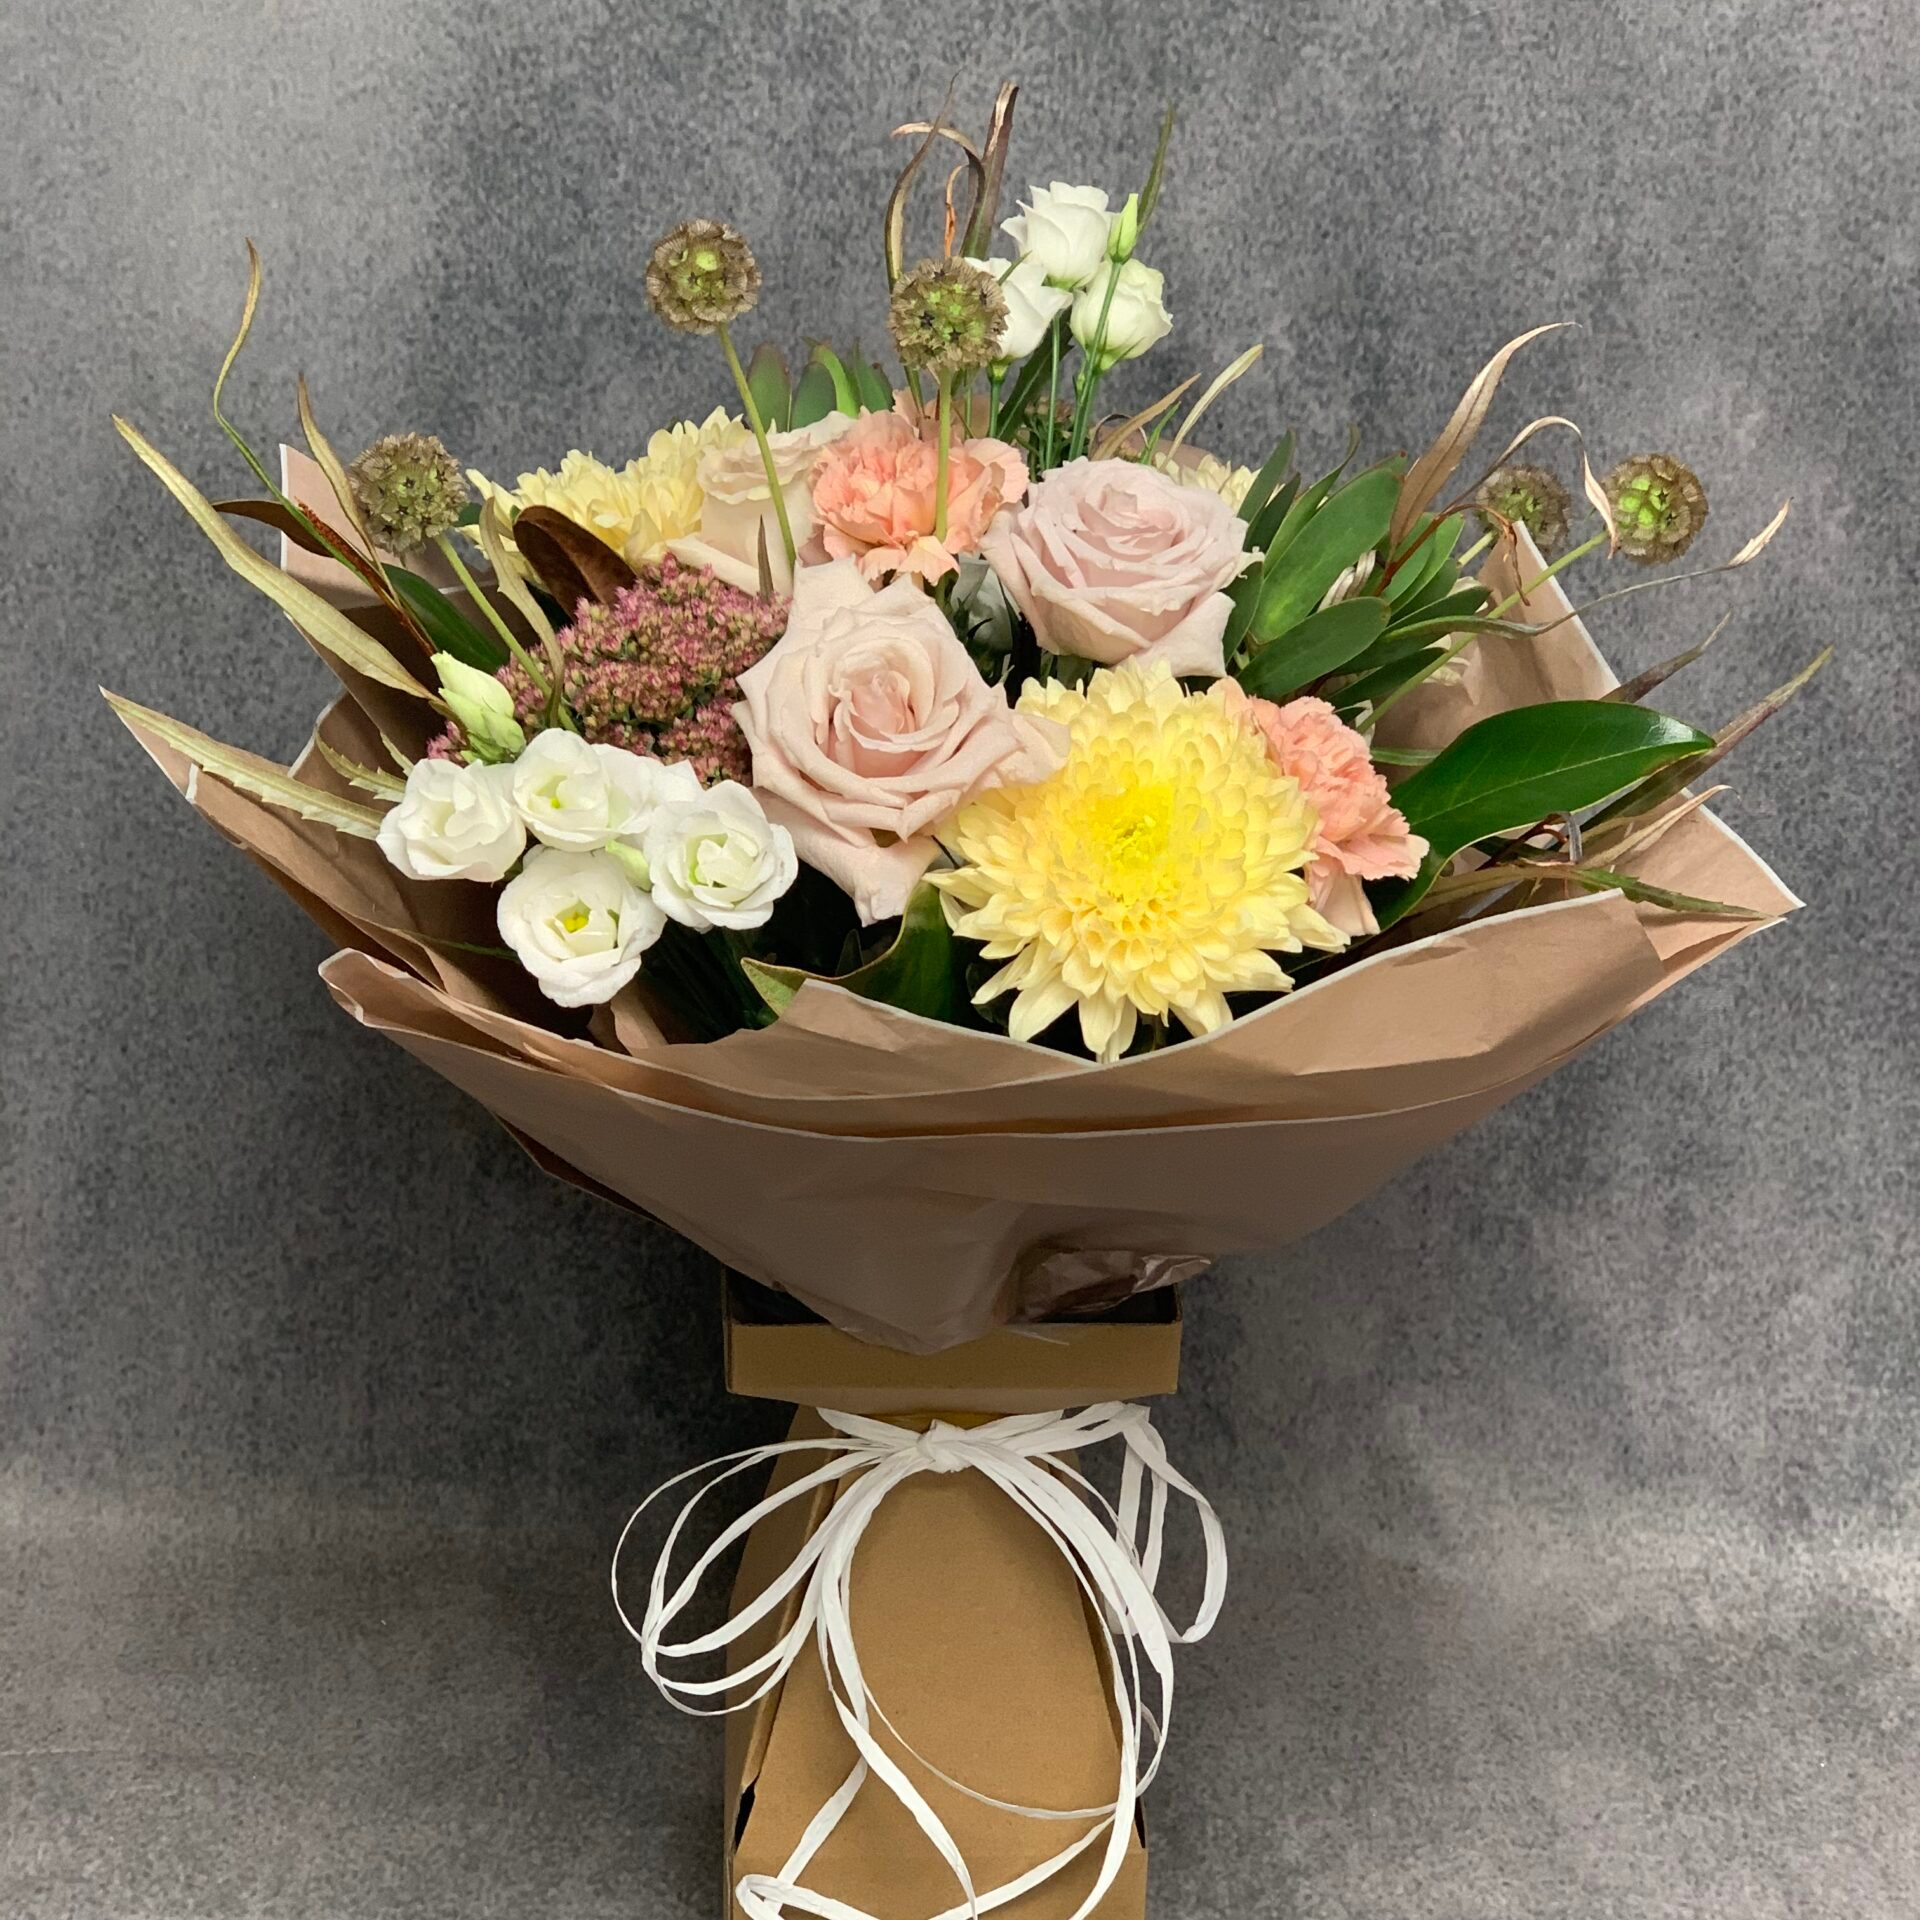 In this image, Willow's 'Bonnie Traditional Bouquet' is against a grey background. The bouquet has a mixture of yellow, white and pink flowers.